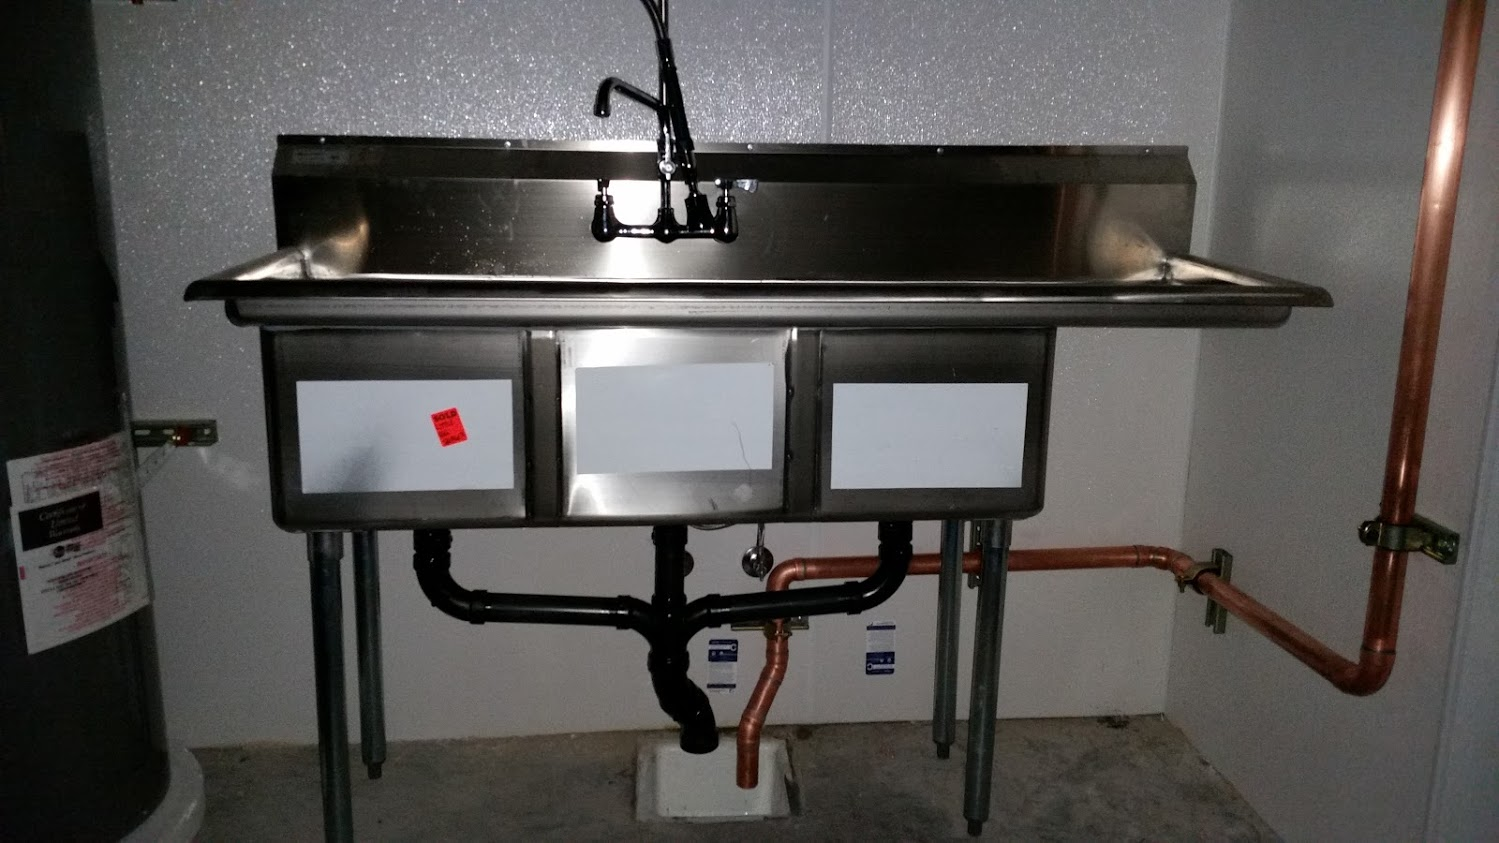 Scullery sink commercial plumbing